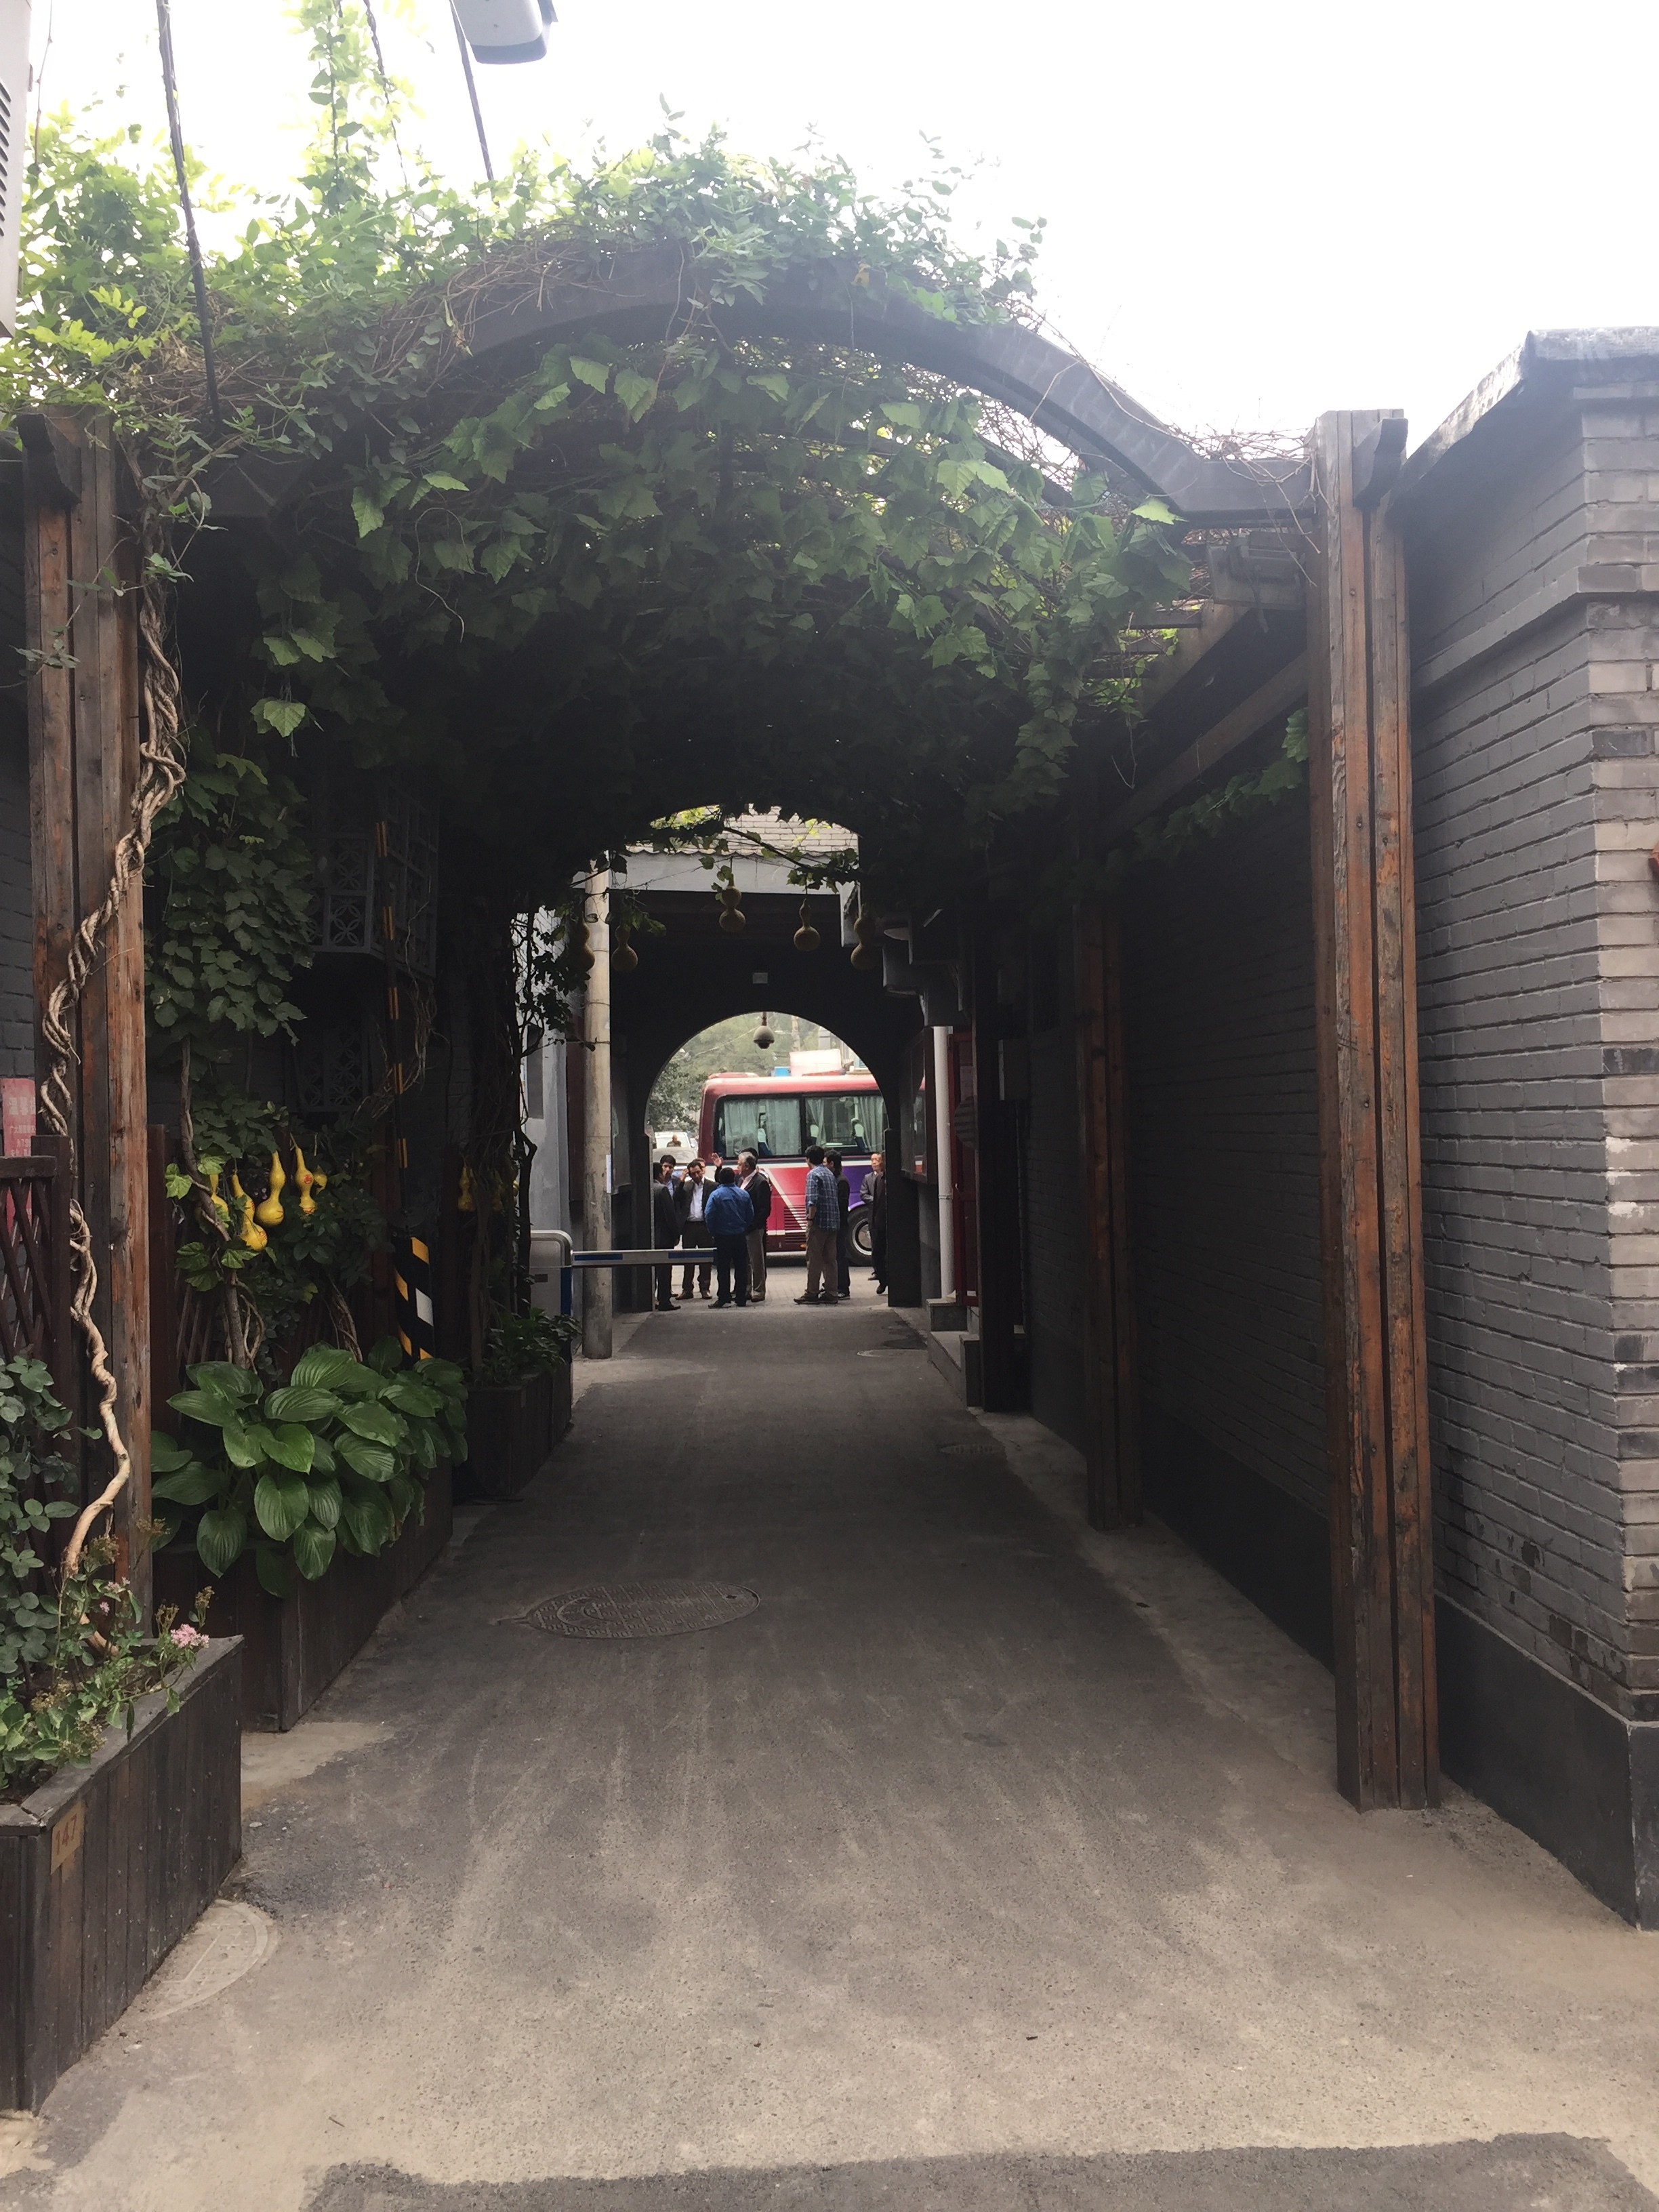 On a slightly smaller scale, the hutong is like a neighborhood - an important part of city life for many